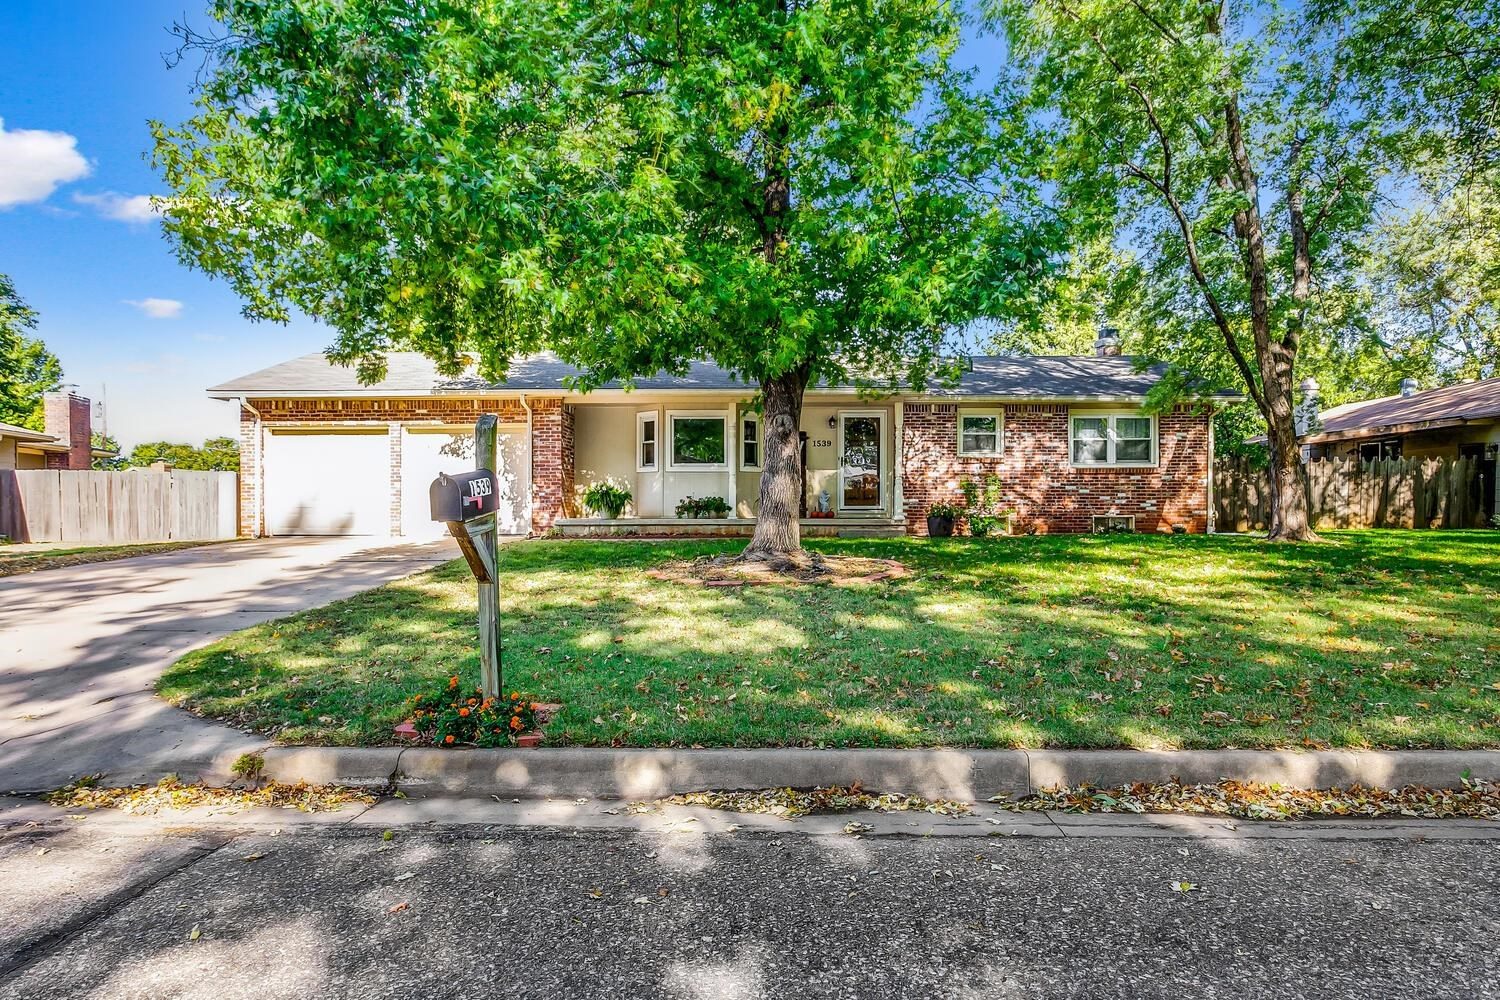 Darling home with great curb appeal located in a quiet neighborhood. Welcome to this three bedroom,